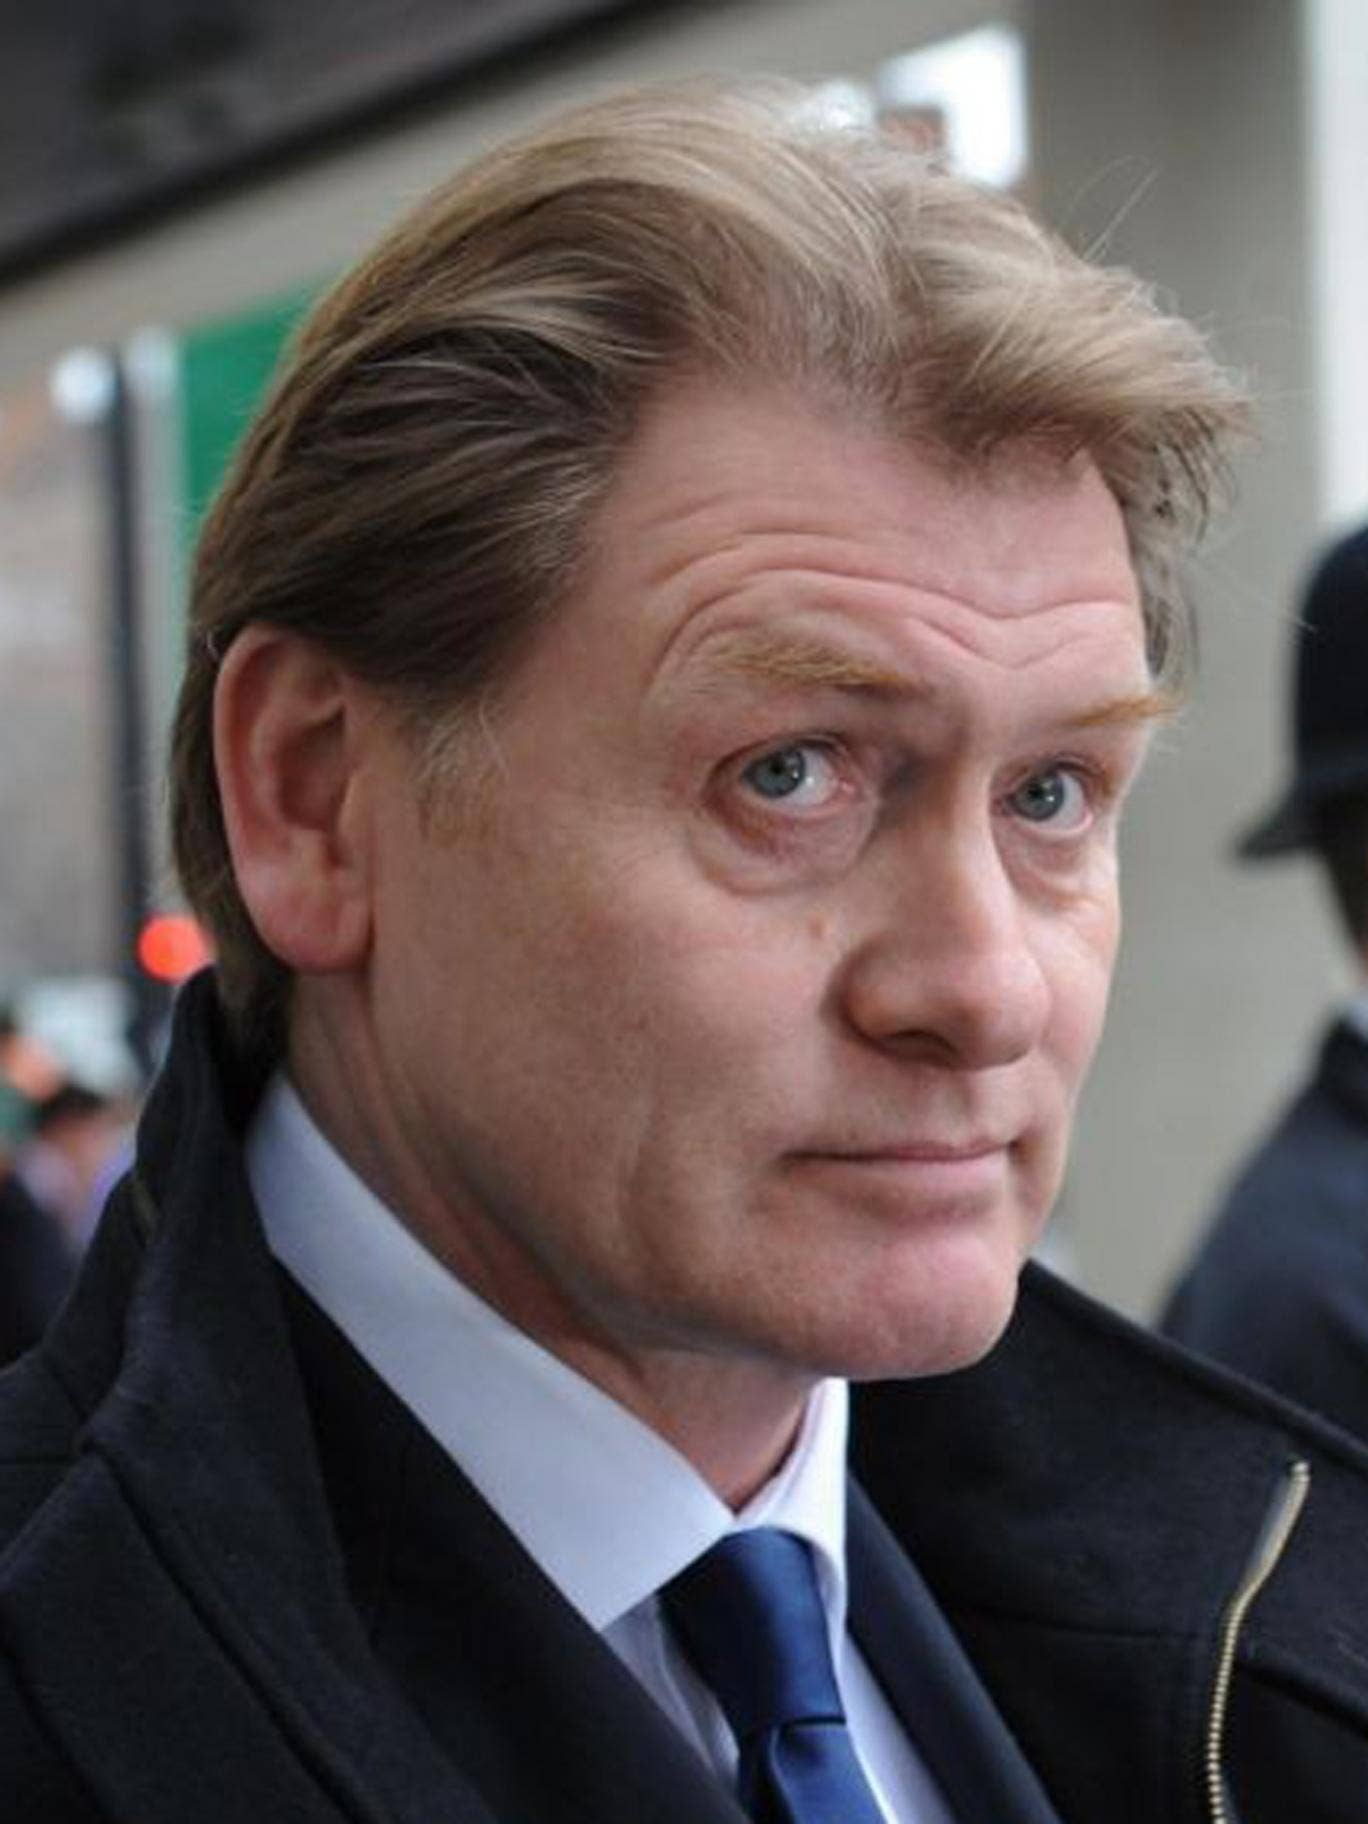 Eric Joyce was arrested at the House of Commons on 14 March